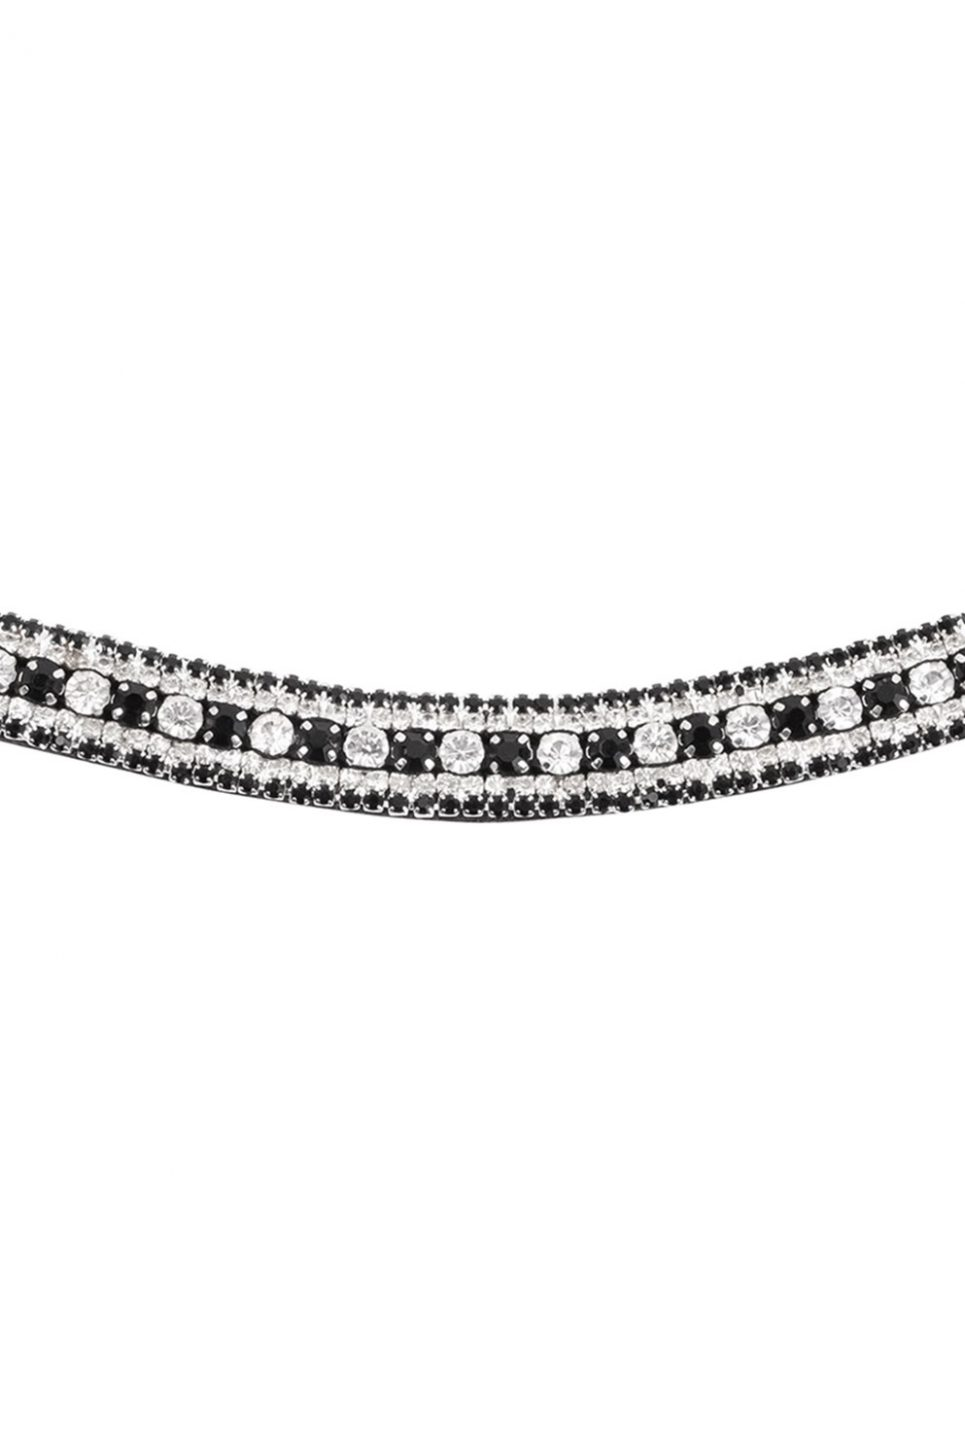 montar black and white browband